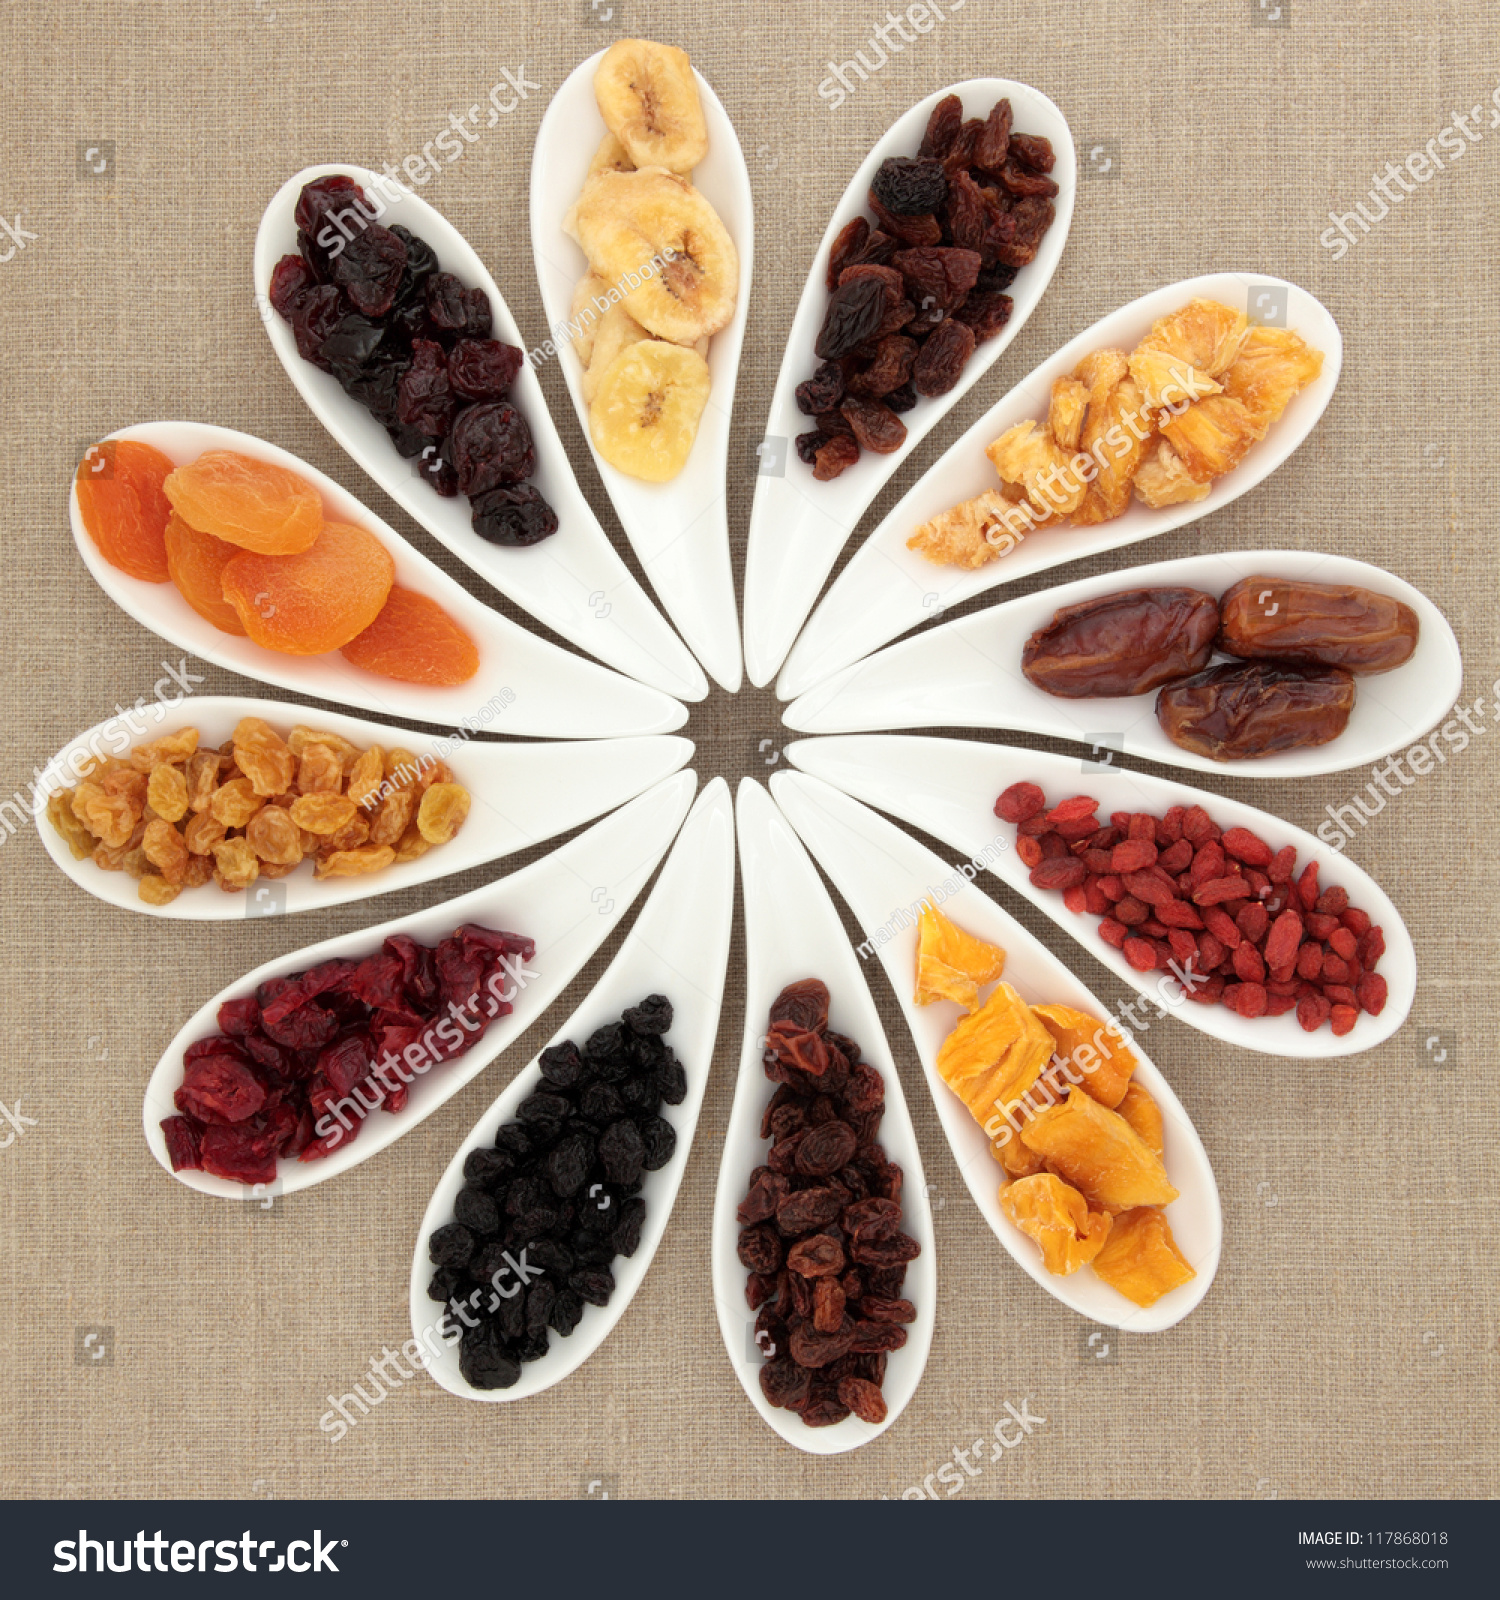 Large Dried Fruit Selection In White Porcelain Dishes Over Beige Linen Background. Stock Photo 117868018 : Shutterstock